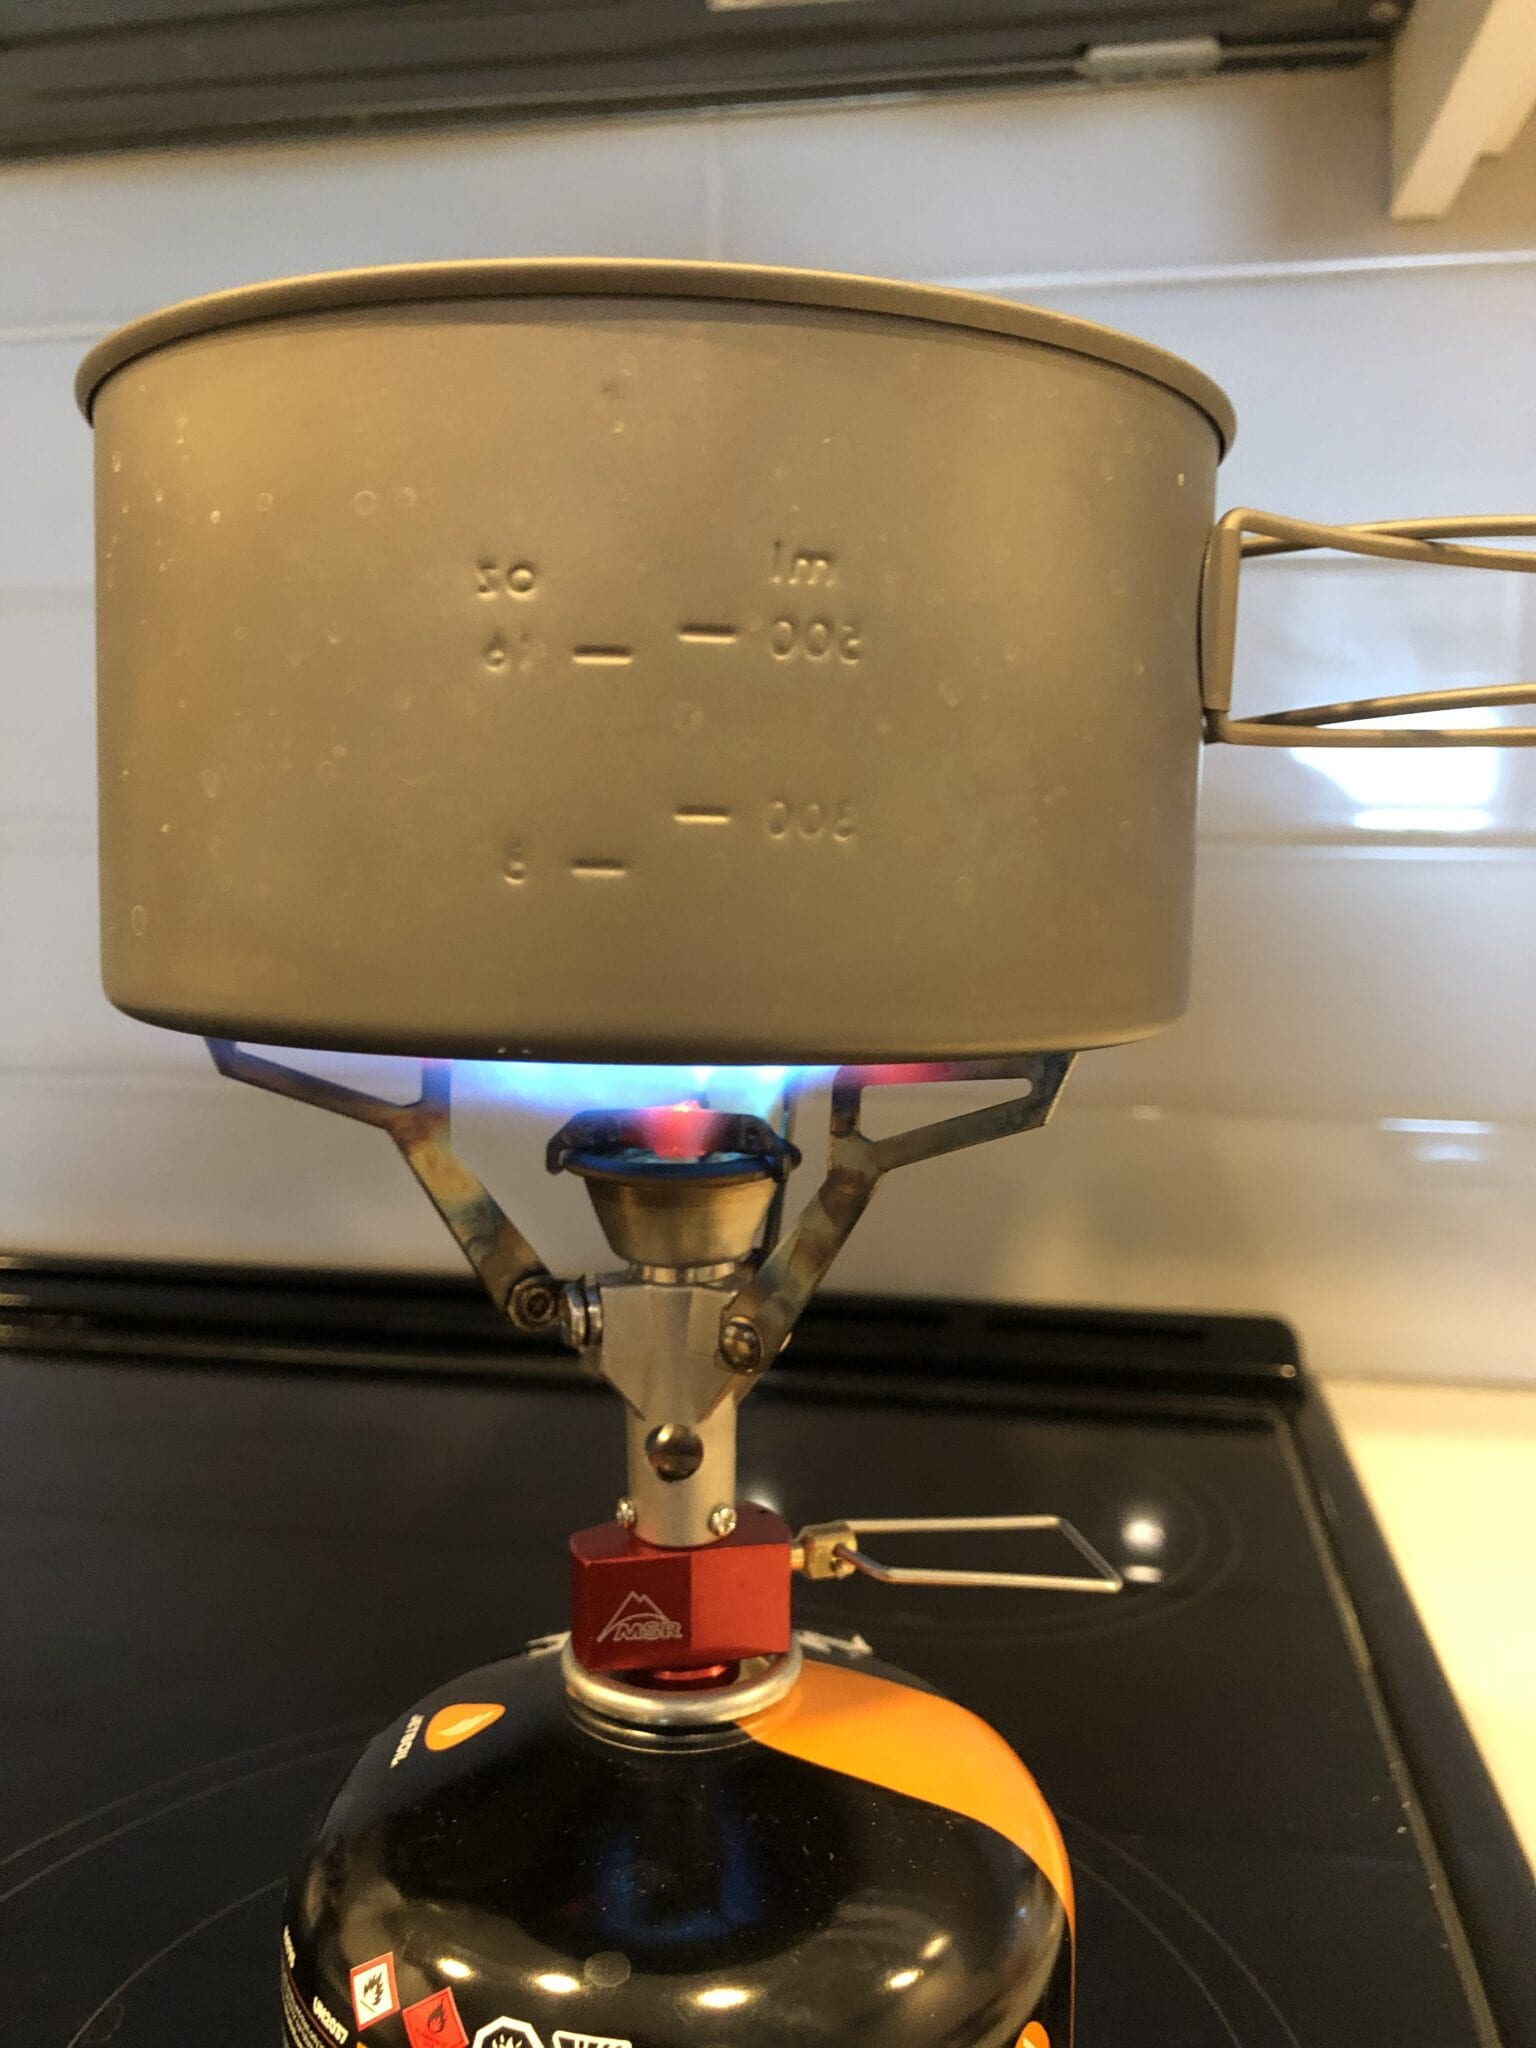 backpacking stove boiling water in pot